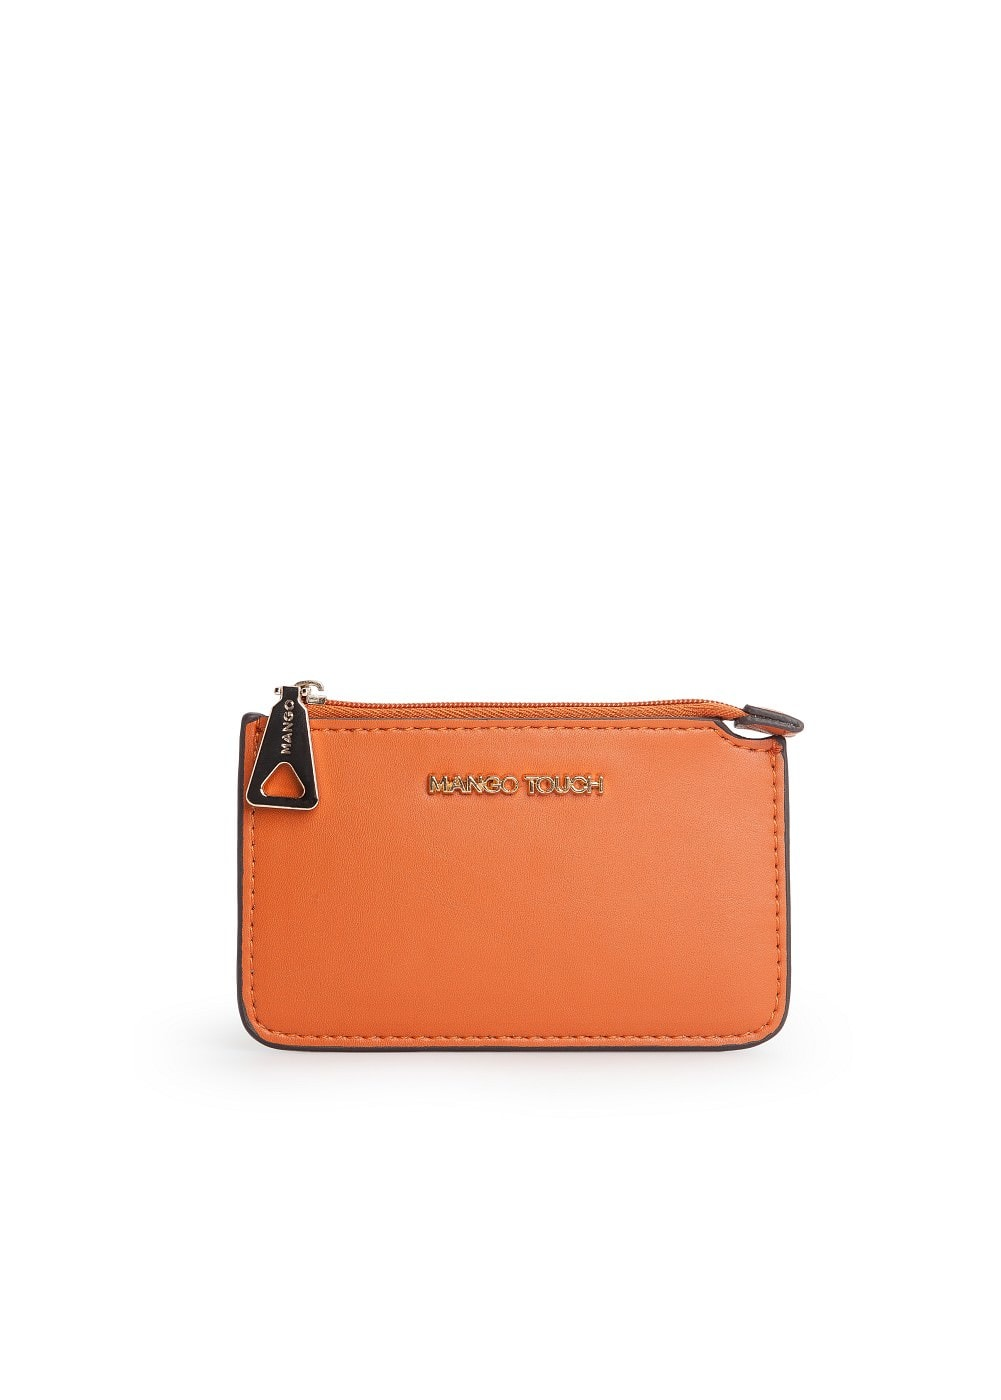 Logo essential purse